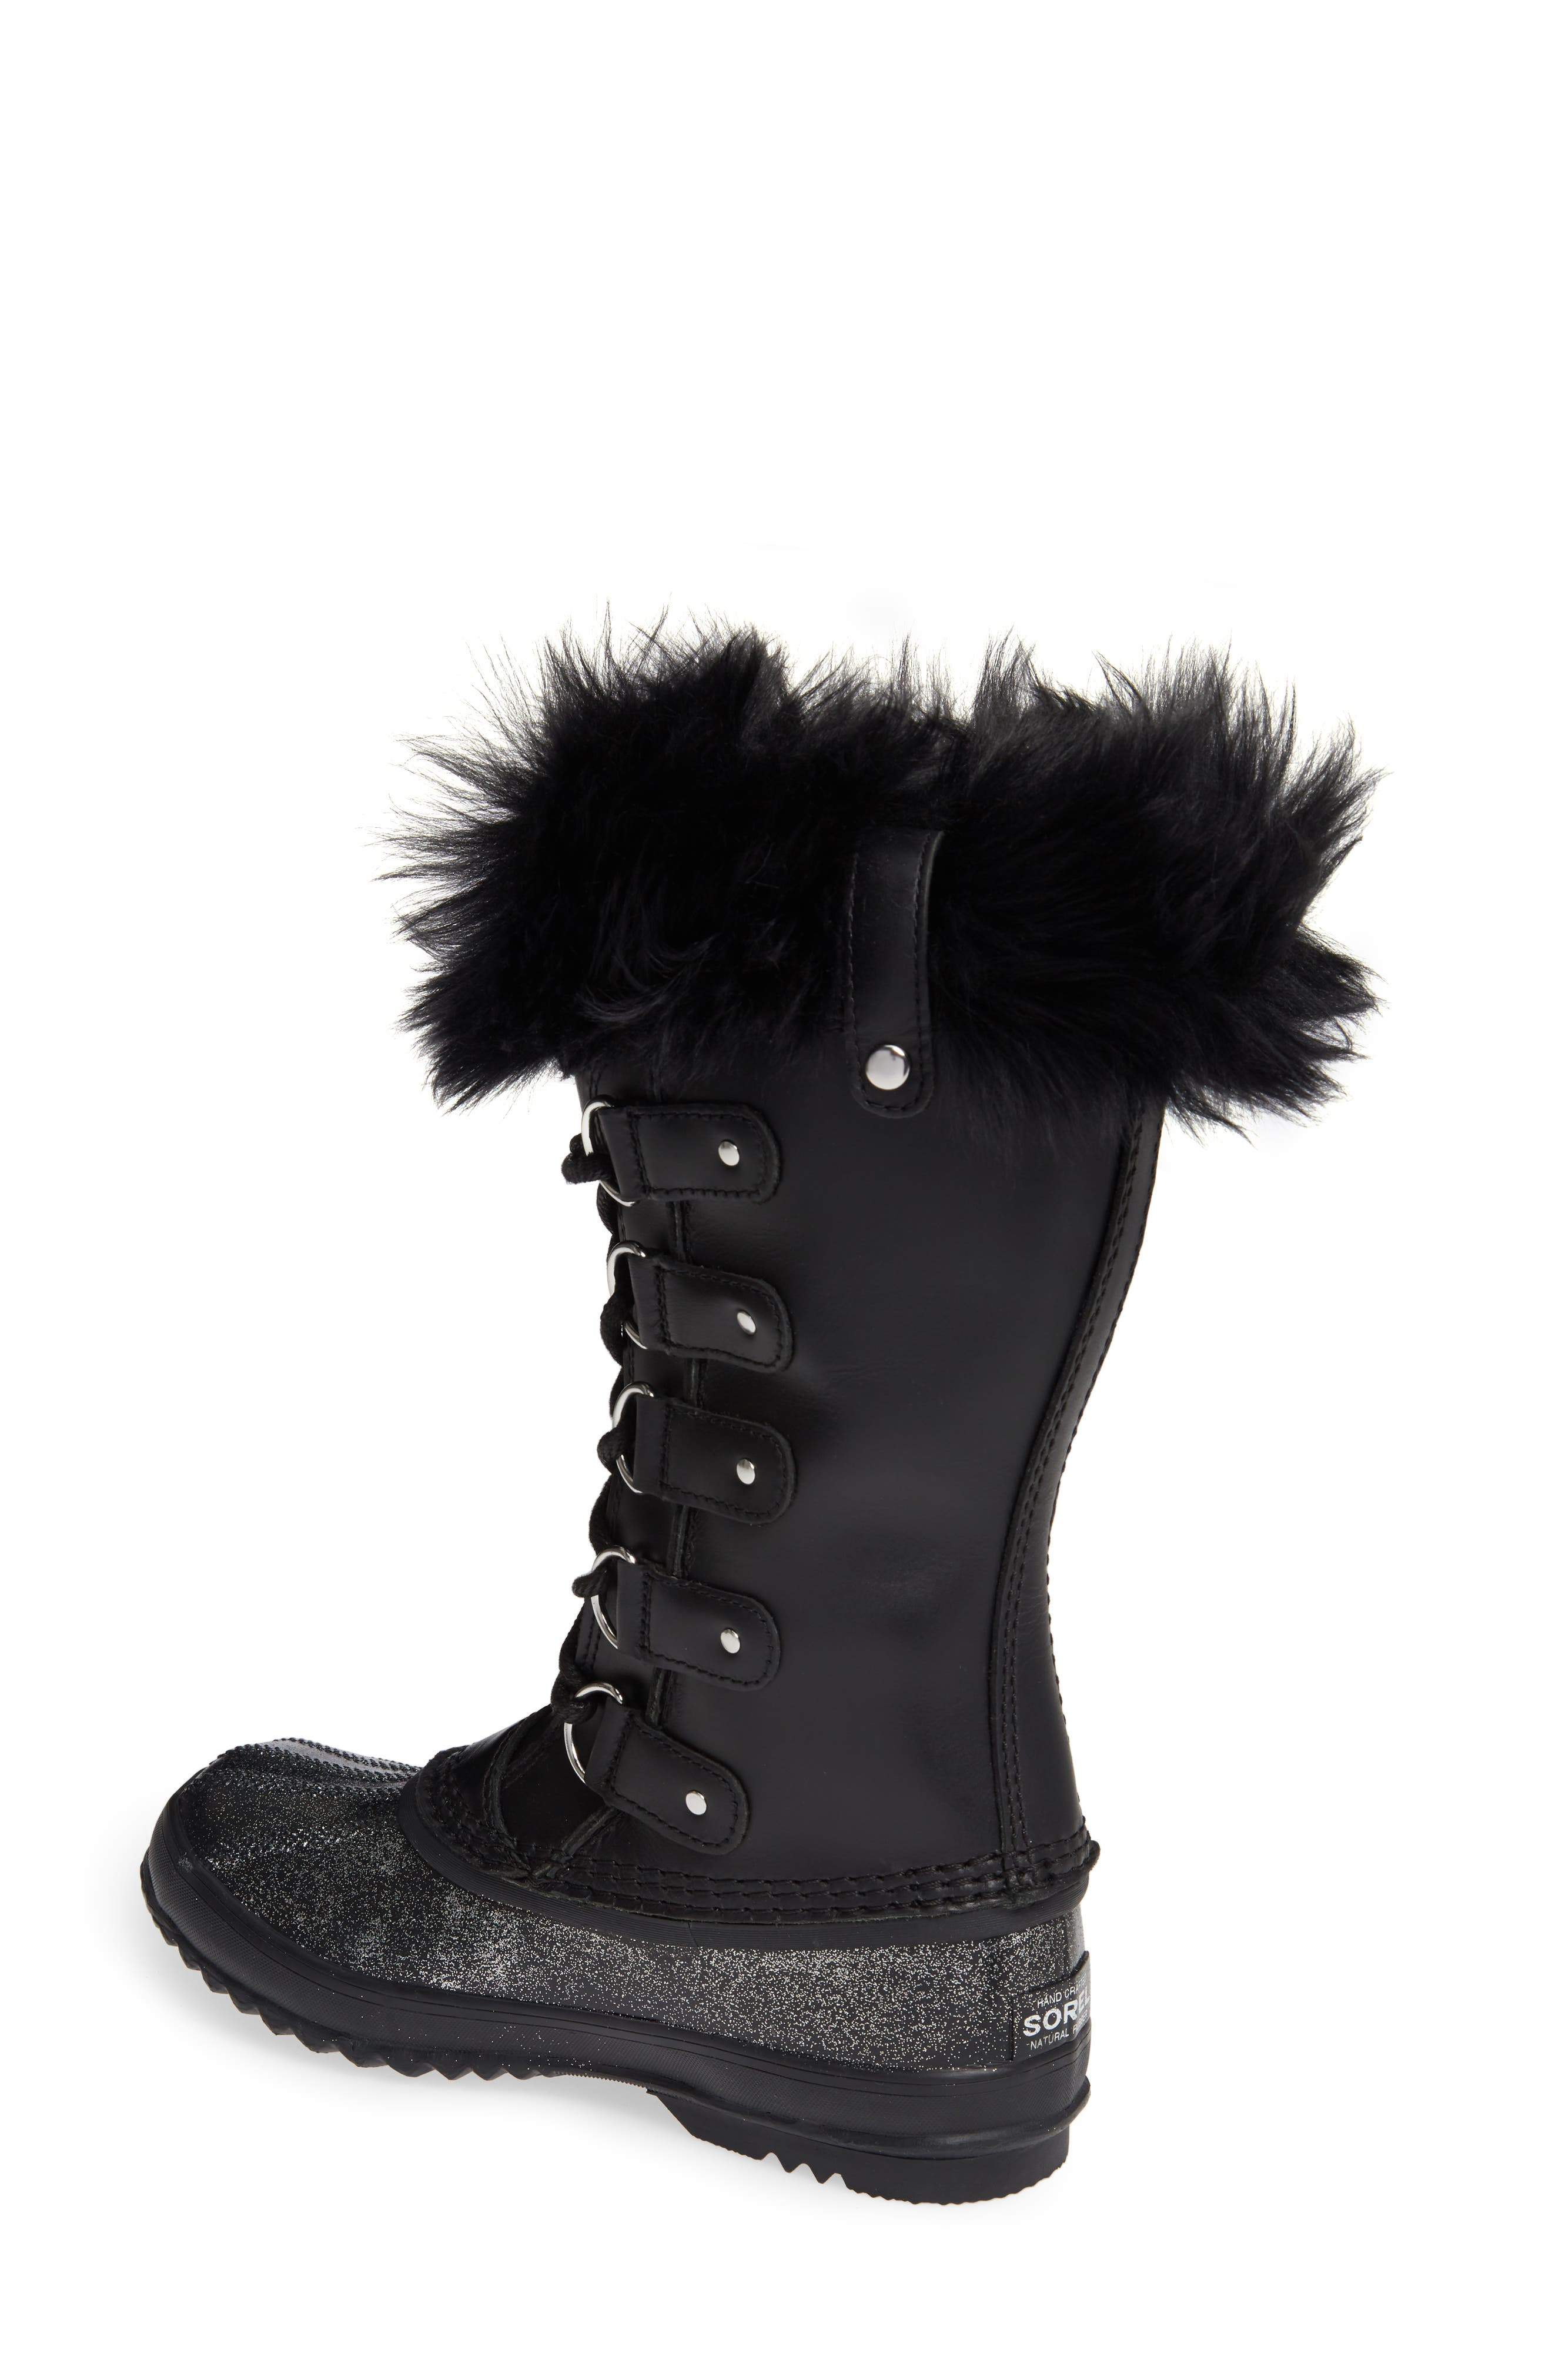 Joan of Arctic<sup>™</sup> Lux Waterproof Winter Boot with Genuine Shearling,                             Alternate thumbnail 2, color,                             010